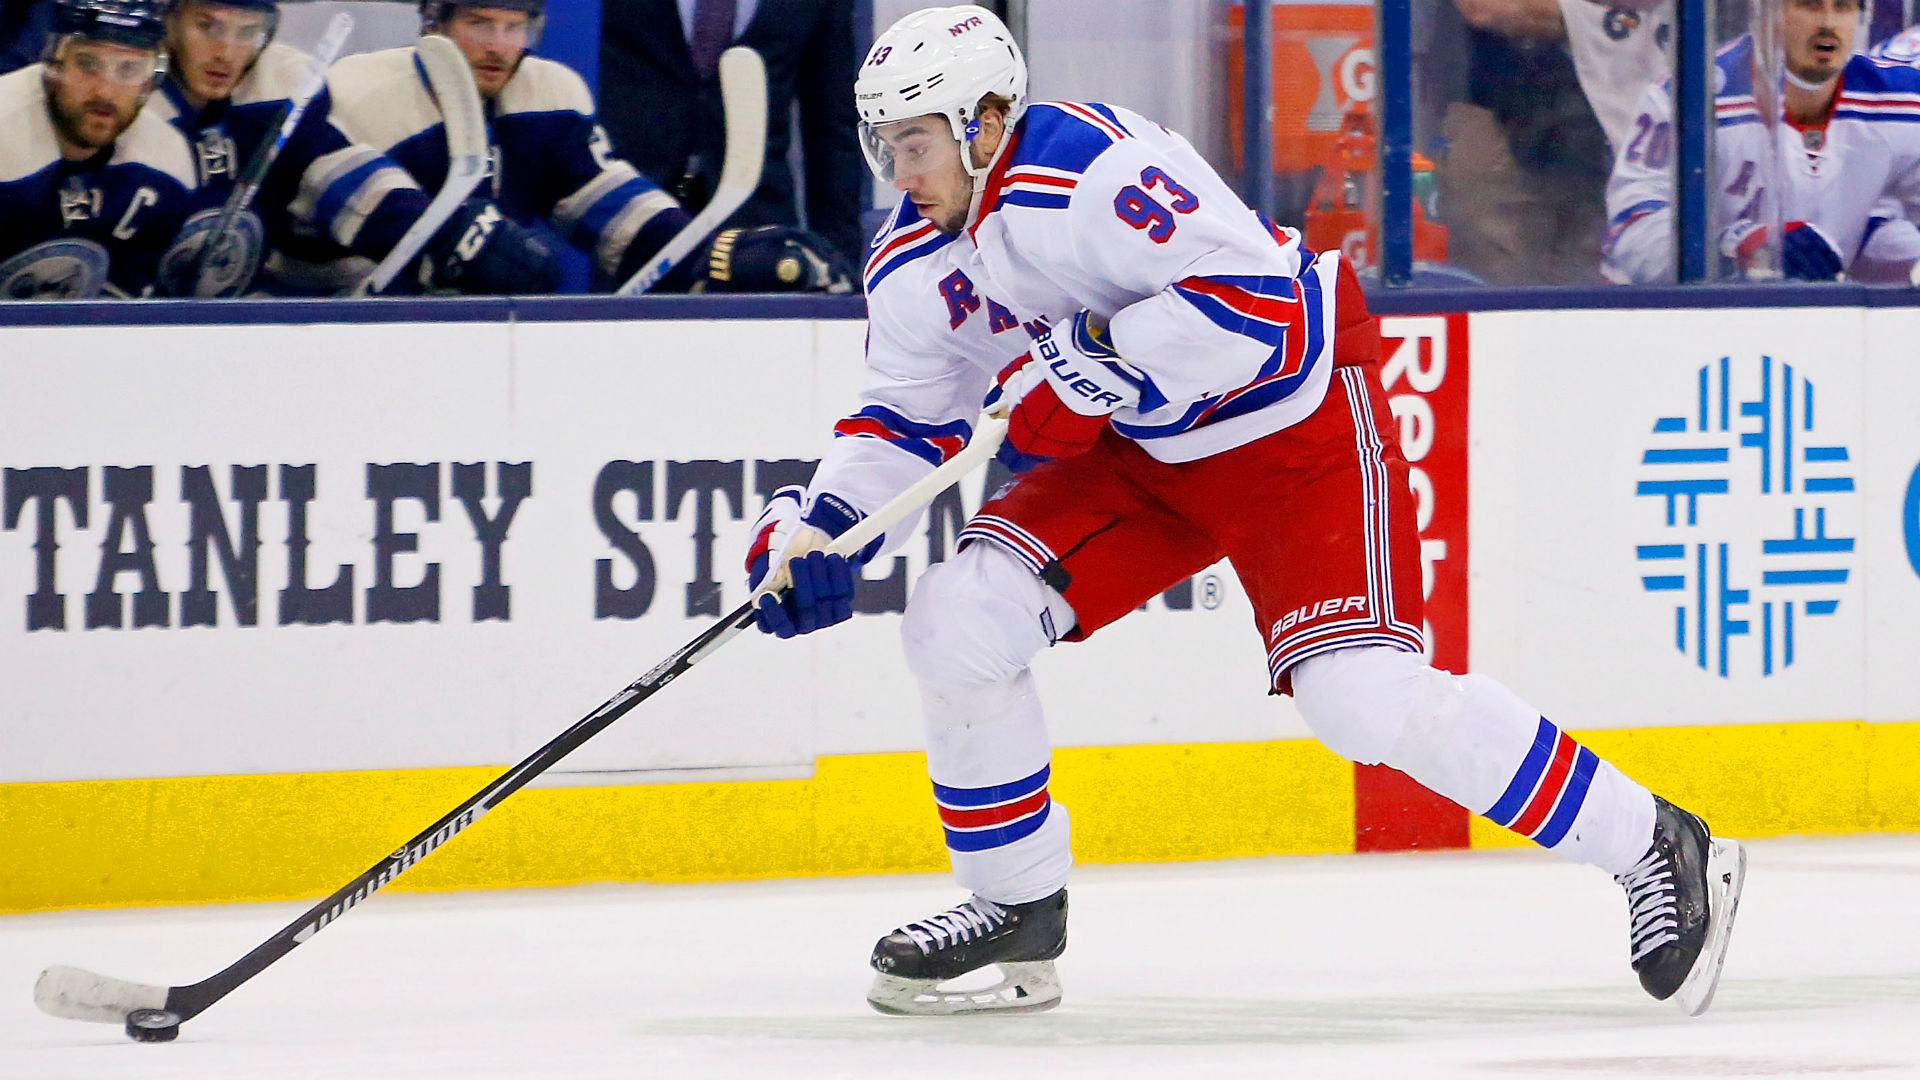 NY Rangers sign Zibanejad to $26.75 million, 5-year deal